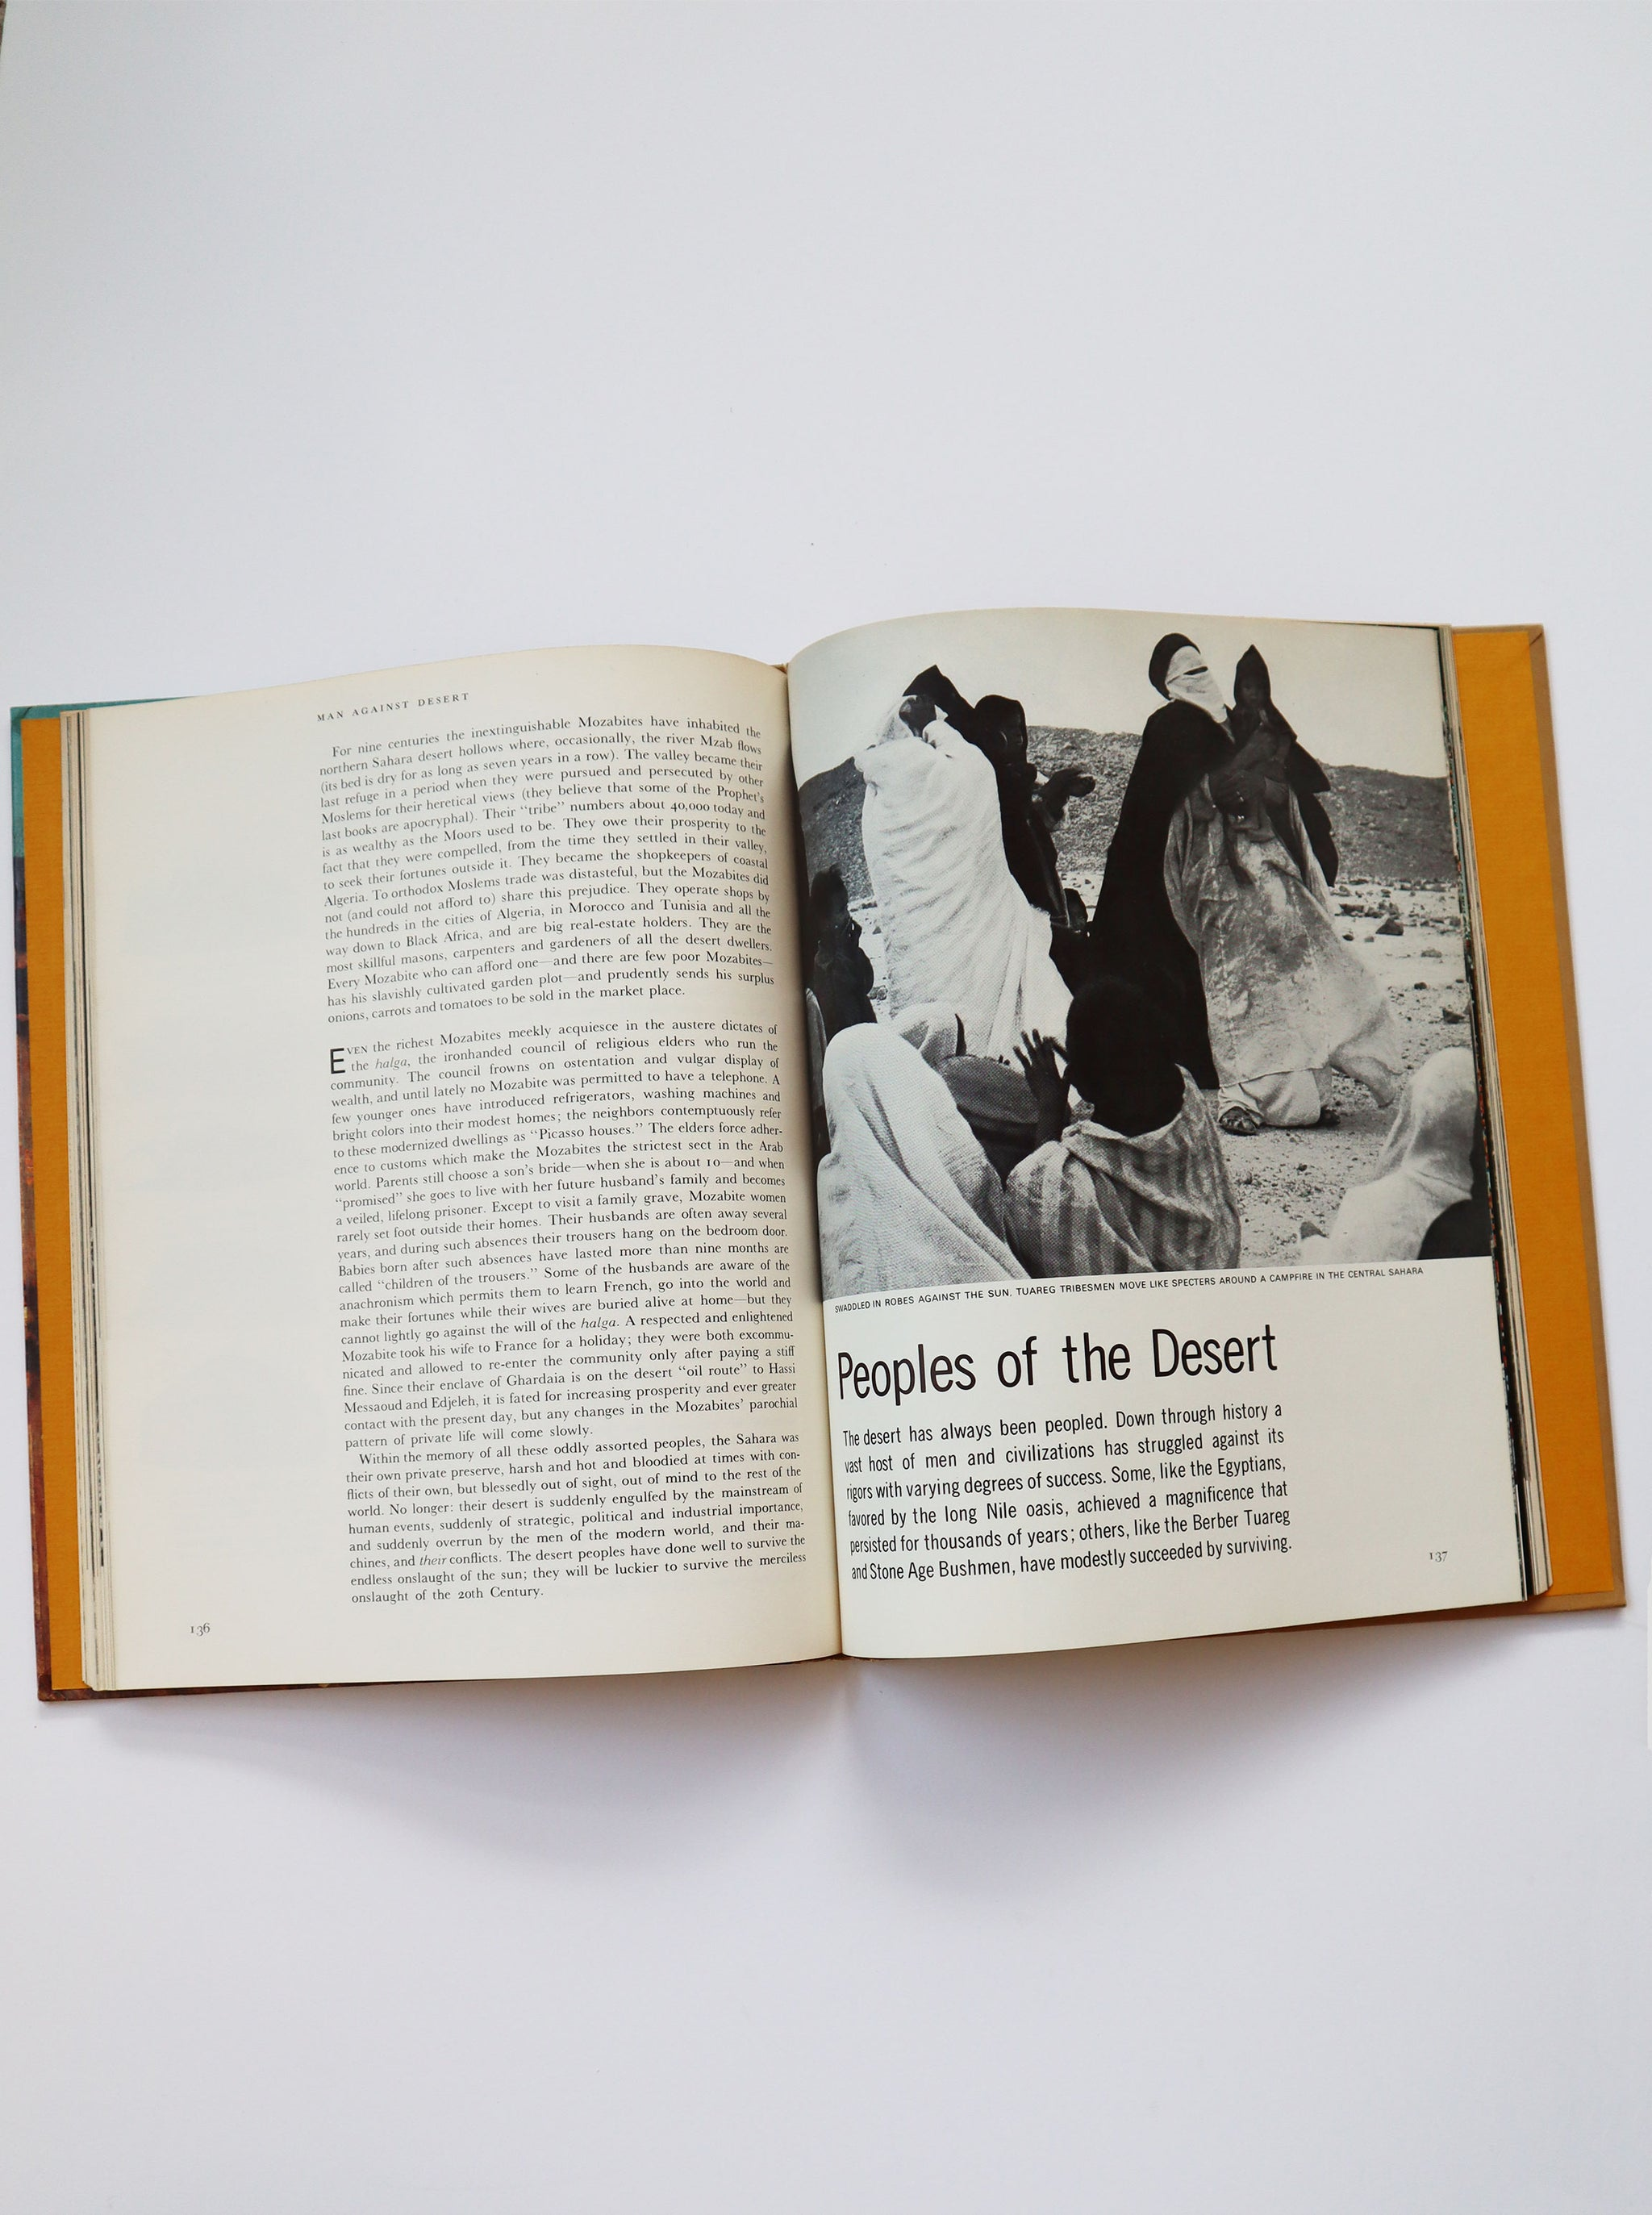 Vintage Life Nature Library's The Desert (copyright 1961, 1962)